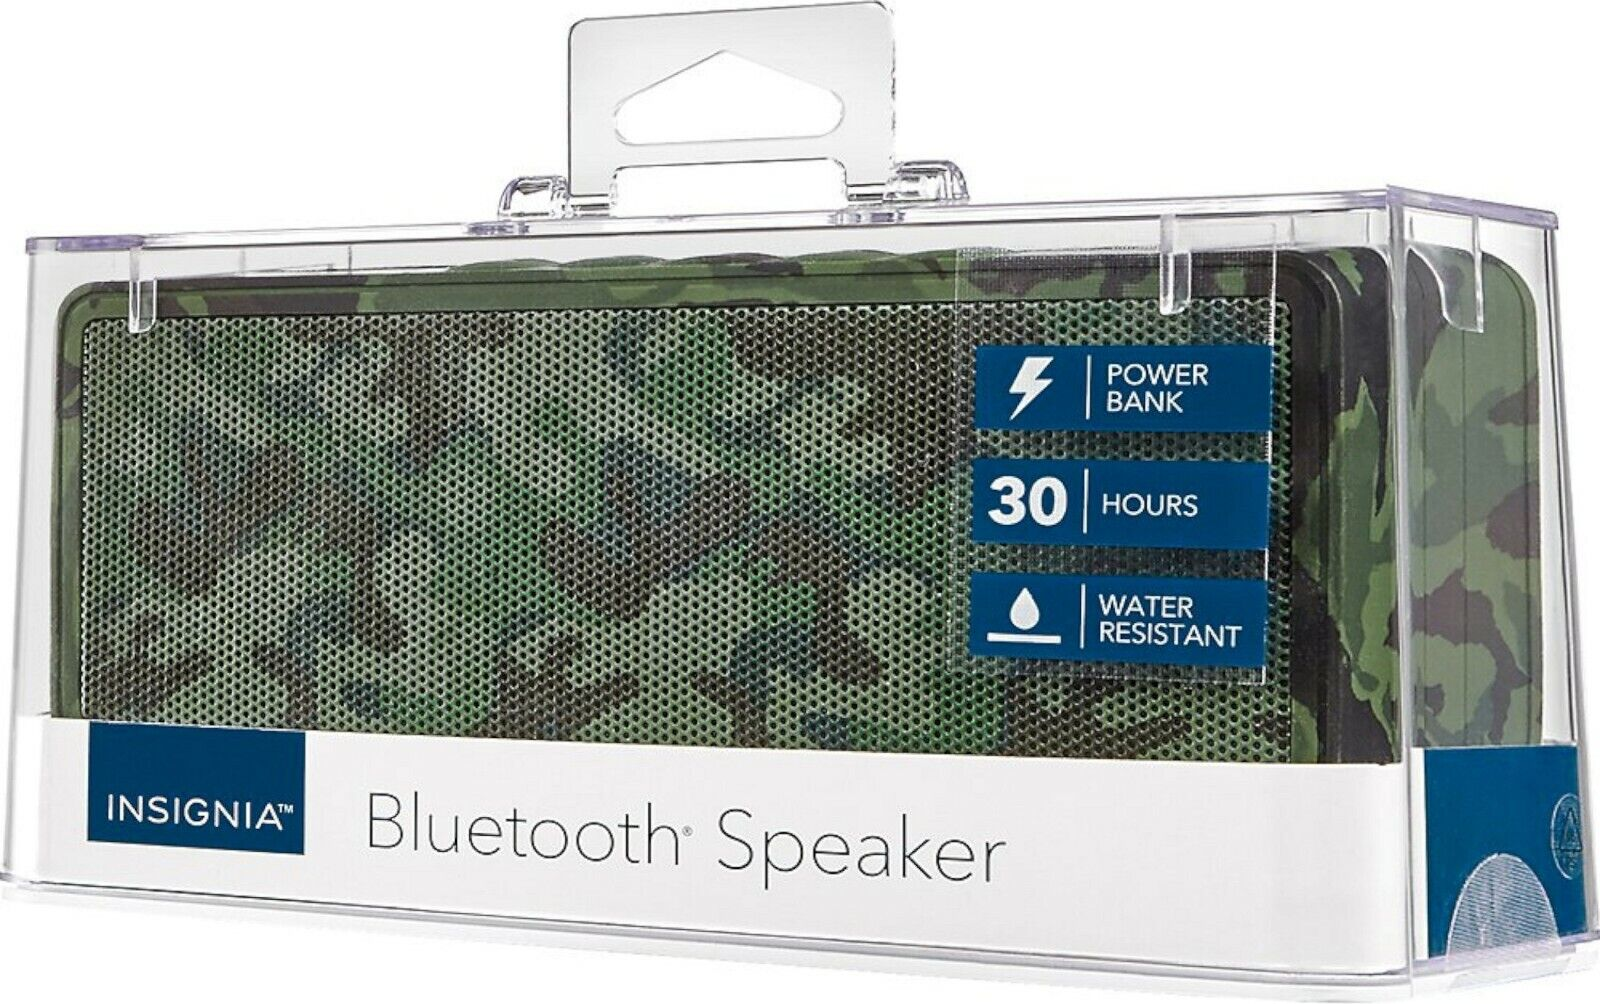 Insignia Portable Bluetooth Stereo Speaker with Power Bank -